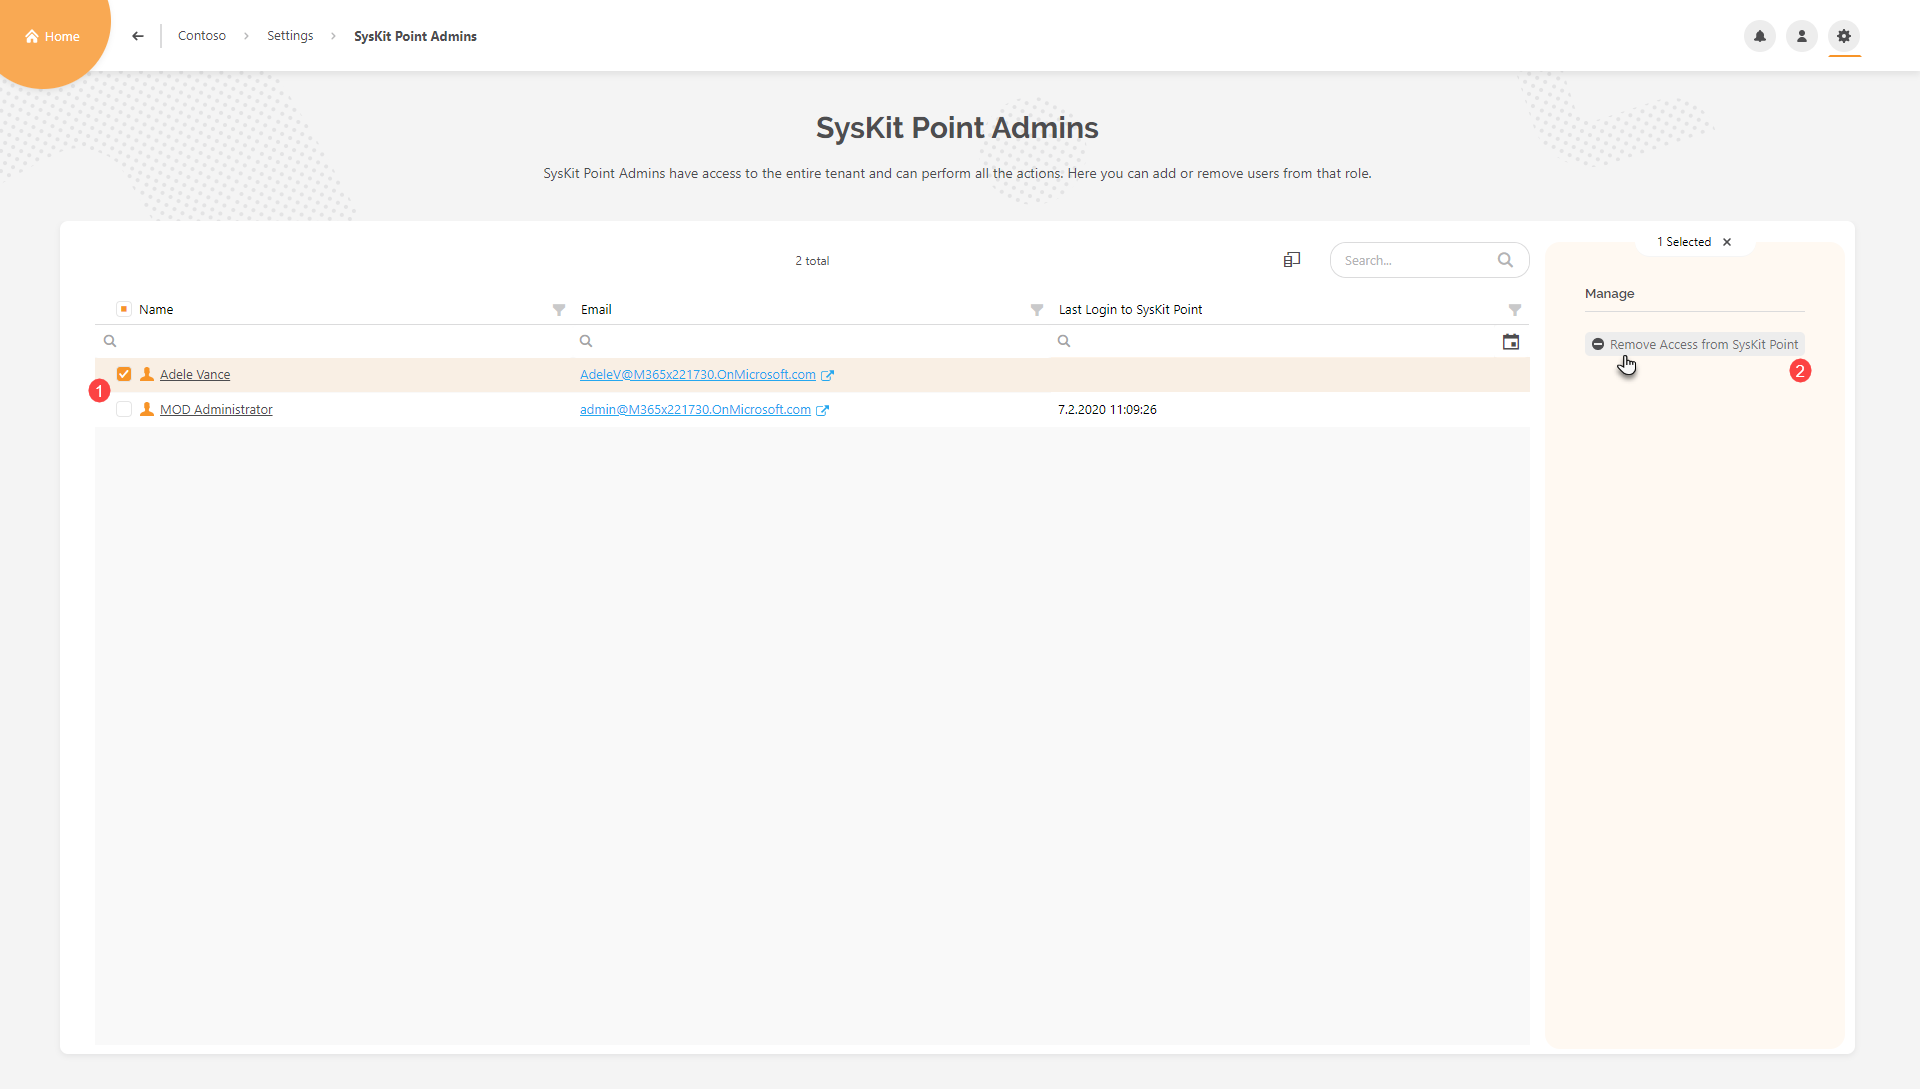 SysKit Point Admins report - Removing access from SysKit Point